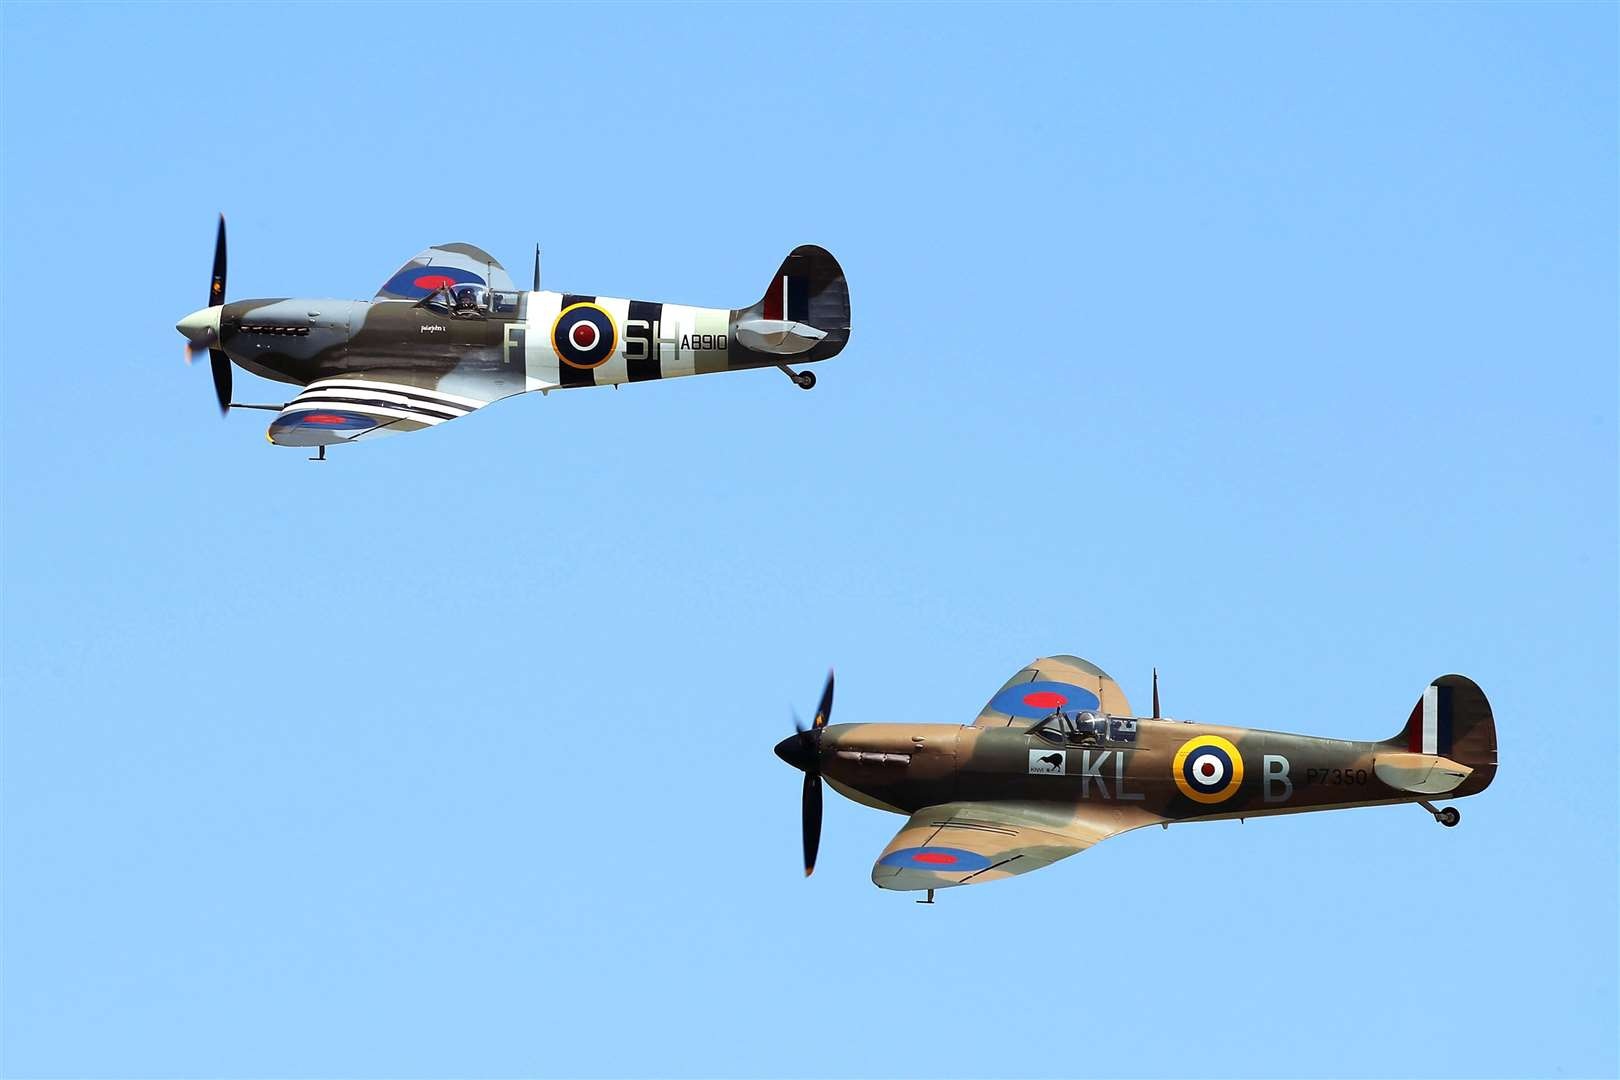 Spitfires played a crucial role in the Battle of Britain. Picture: PA